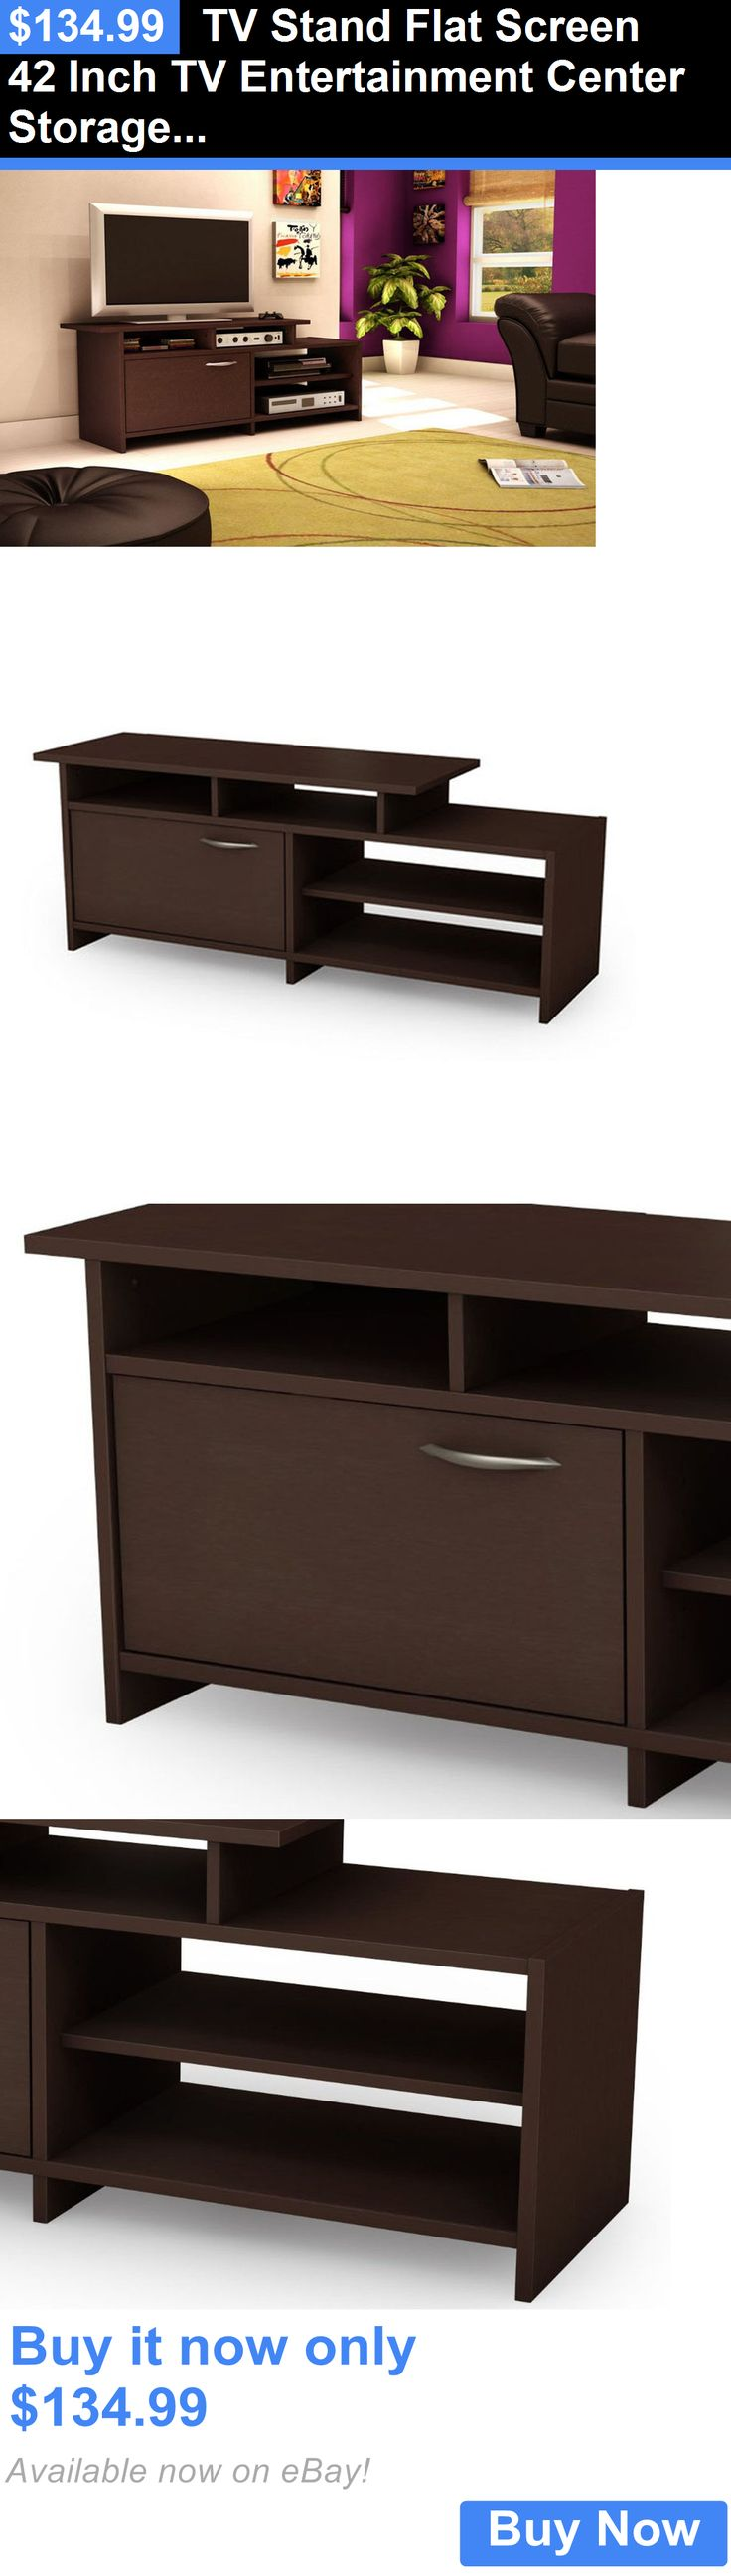 Entertainment Units TV Stands: Tv Stand Flat Screen 42 Inch Tv Entertainment Center Storage Chocolate Brown New BUY IT NOW ONLY: $134.99